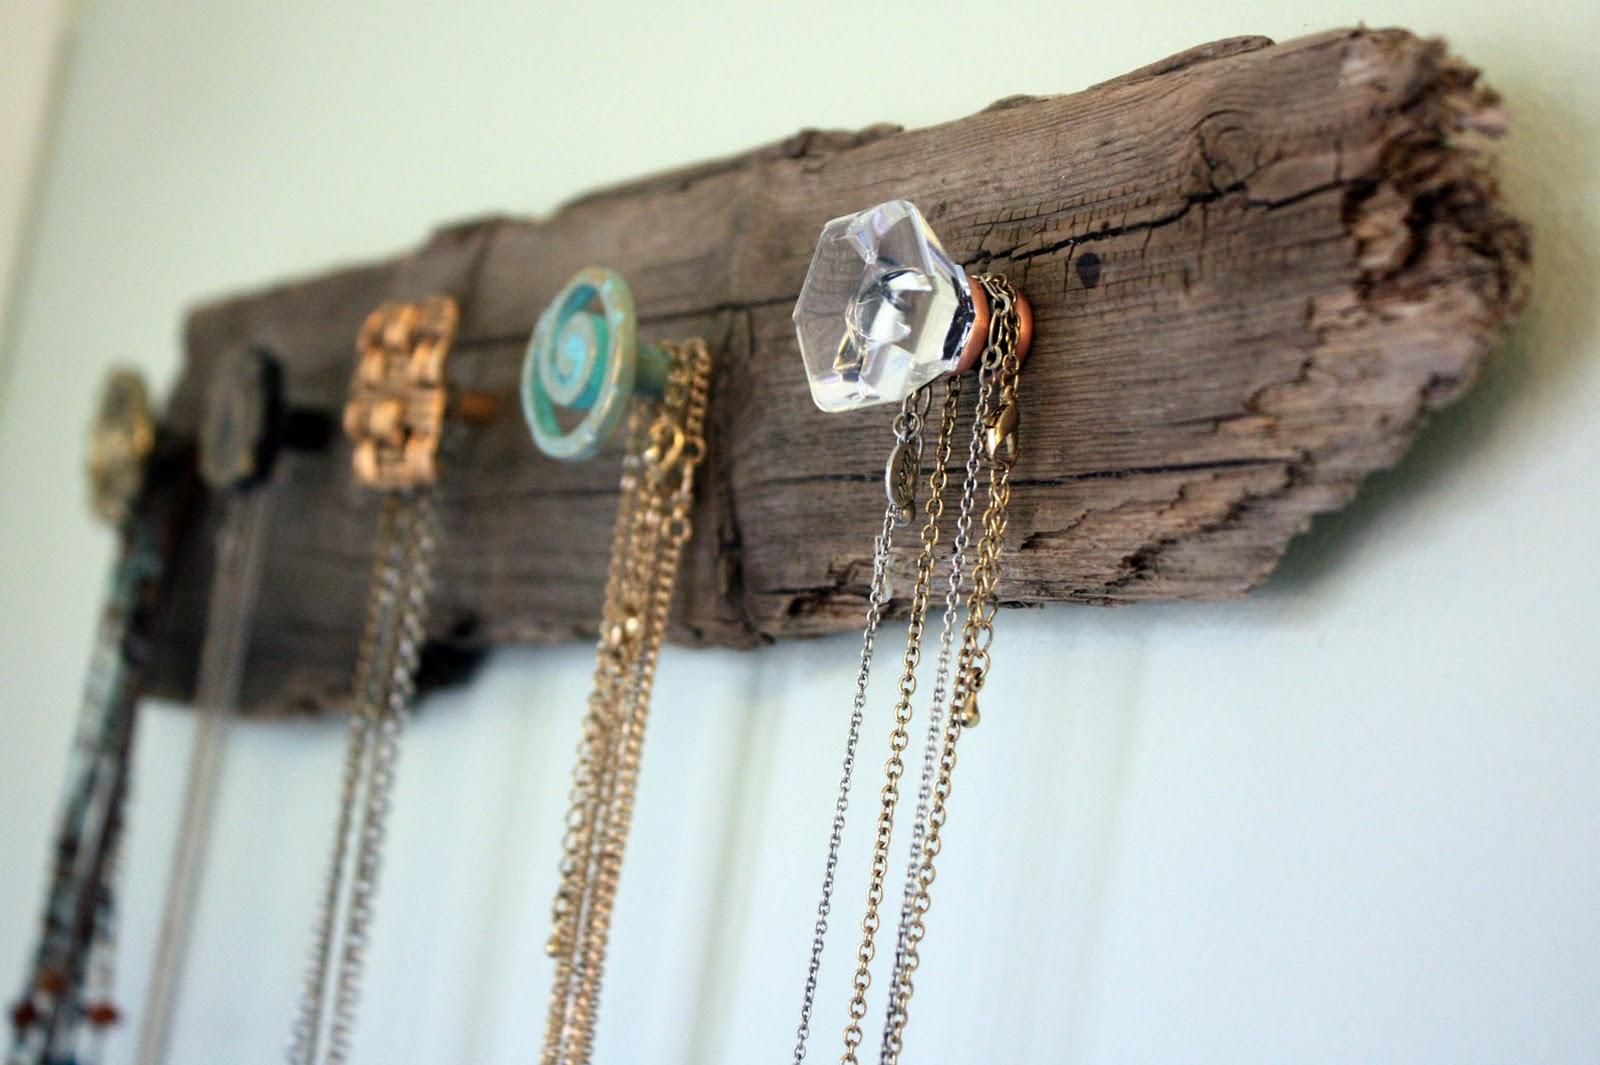 A DIY wood pallet jewelry holder used for necklace storage.